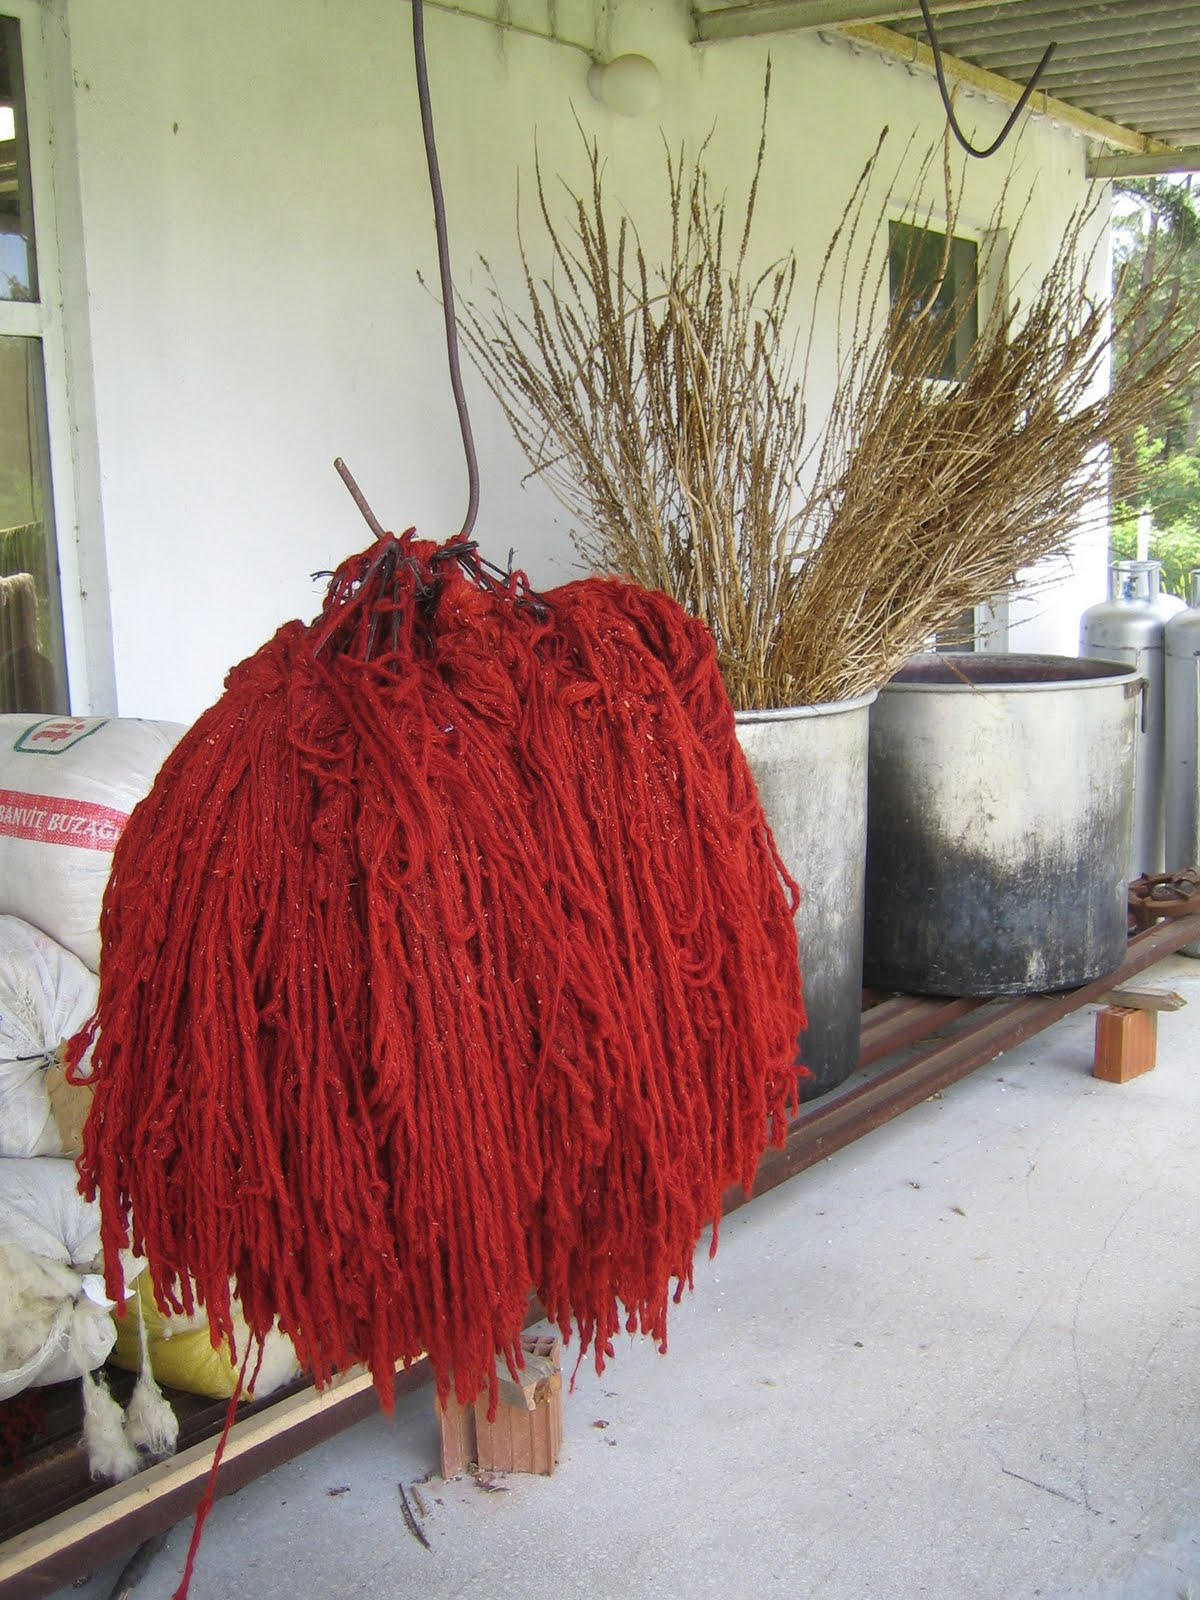 Red yarns dyed with madder root, Örselli, Manisa, Western Turkey, 2007